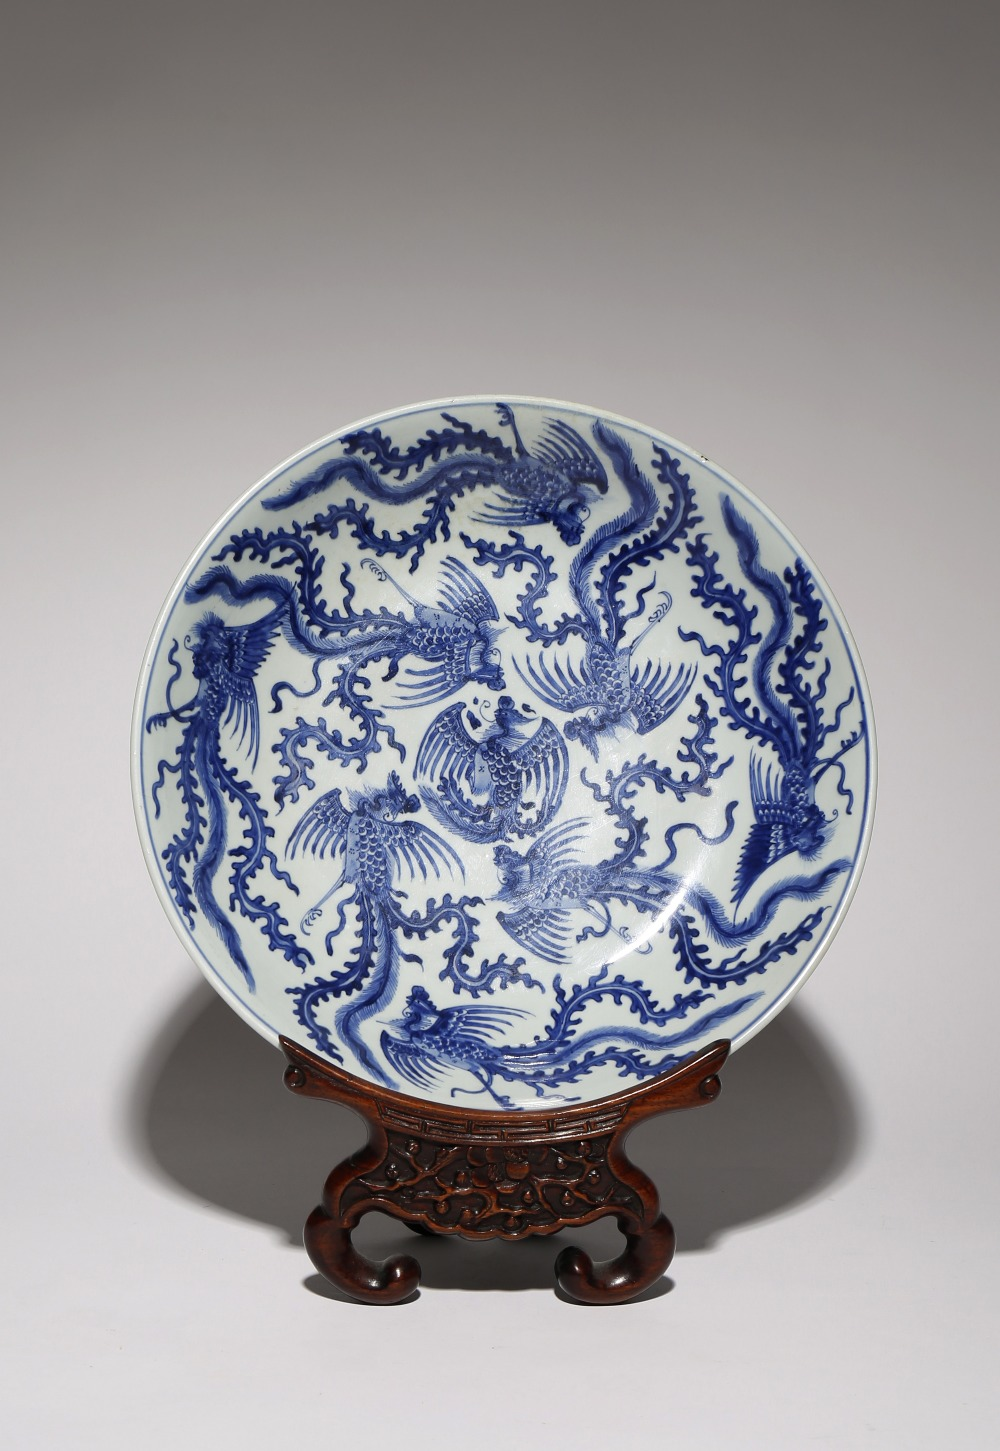 A LARGE CHINESE BLUE AND WHITE 'PHOENIX' DISH KANGXI 1662-1722 Rising from a tapering foot to an